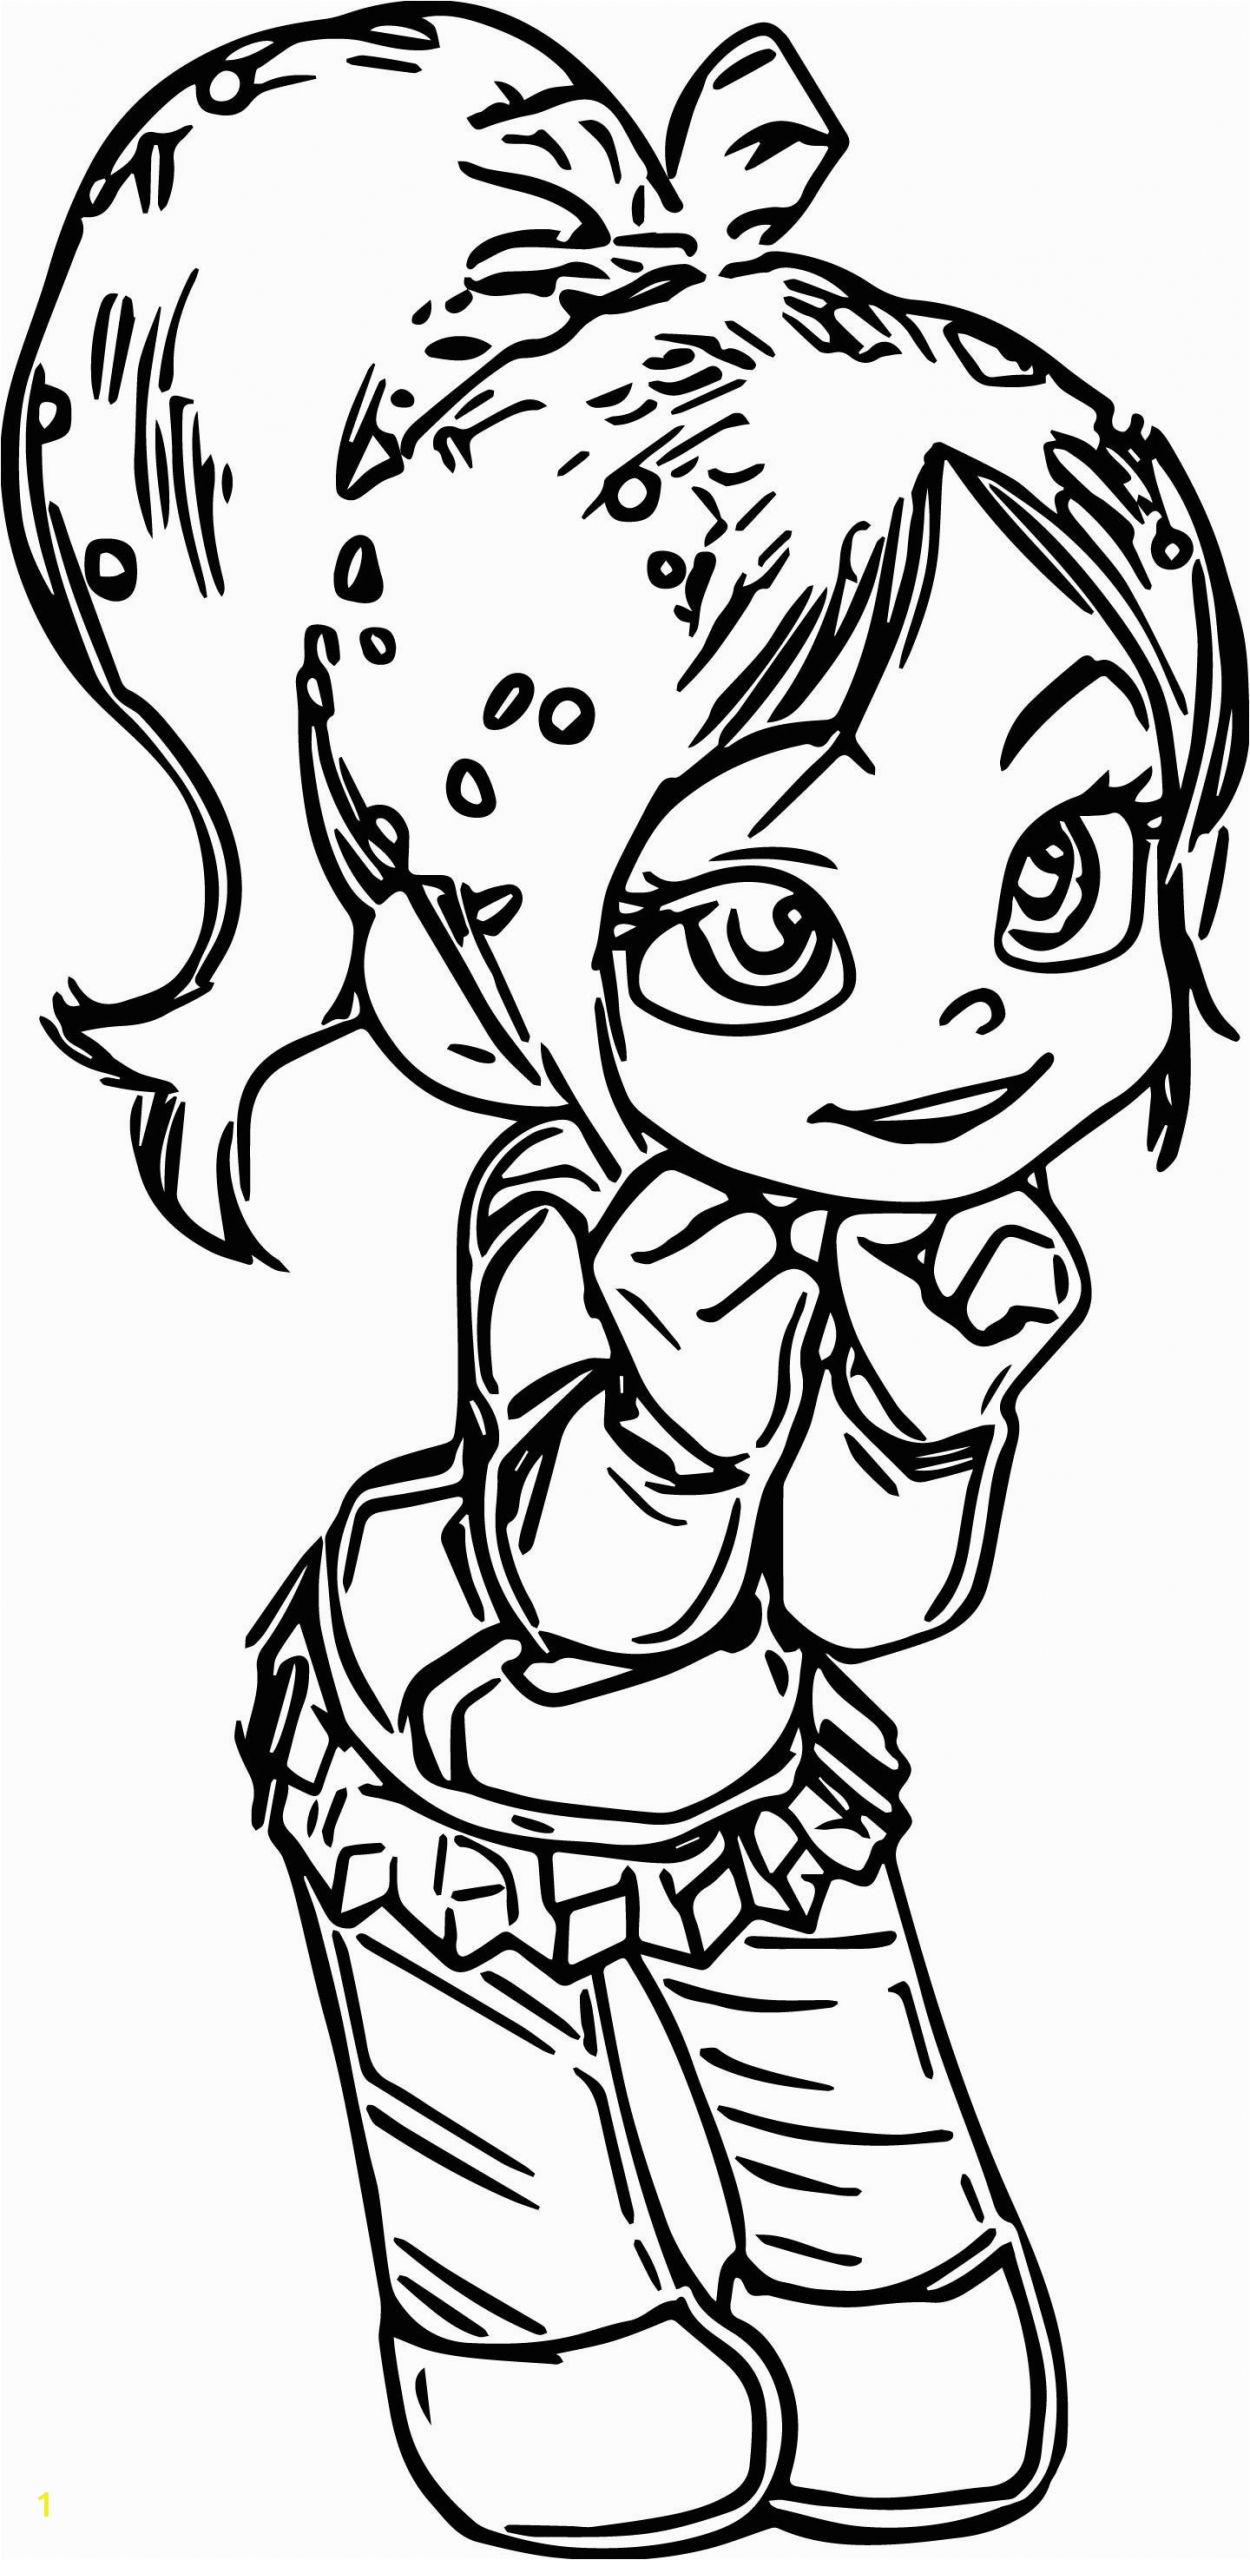 Sonic Mania Plus Coloring Pages Vanellope Von Schweetz Girl Coloring Page